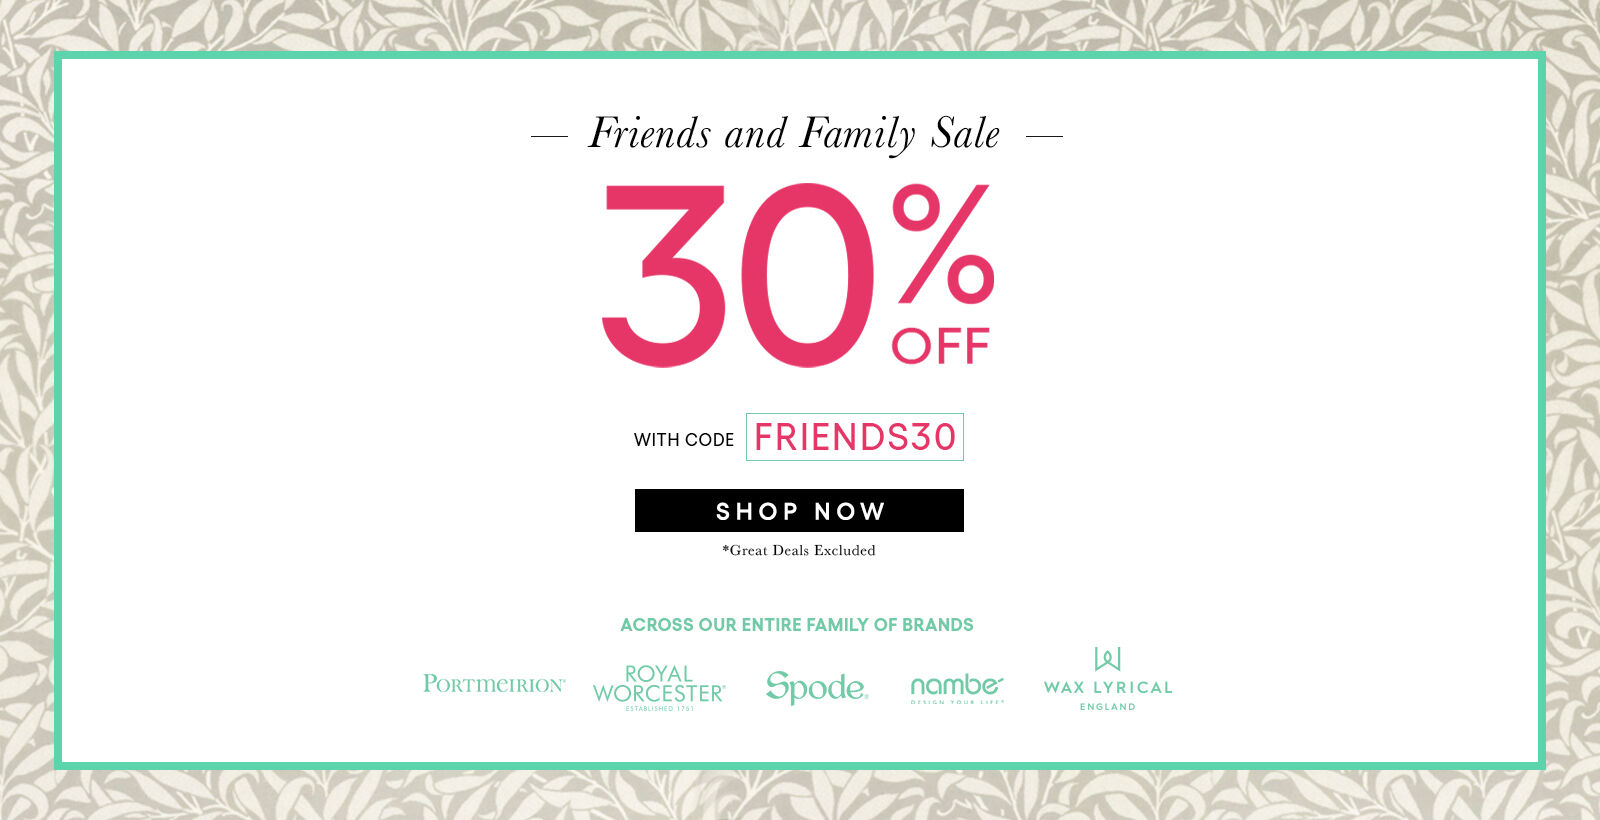 Friends & Family Sale 30% off with FRIENDS30